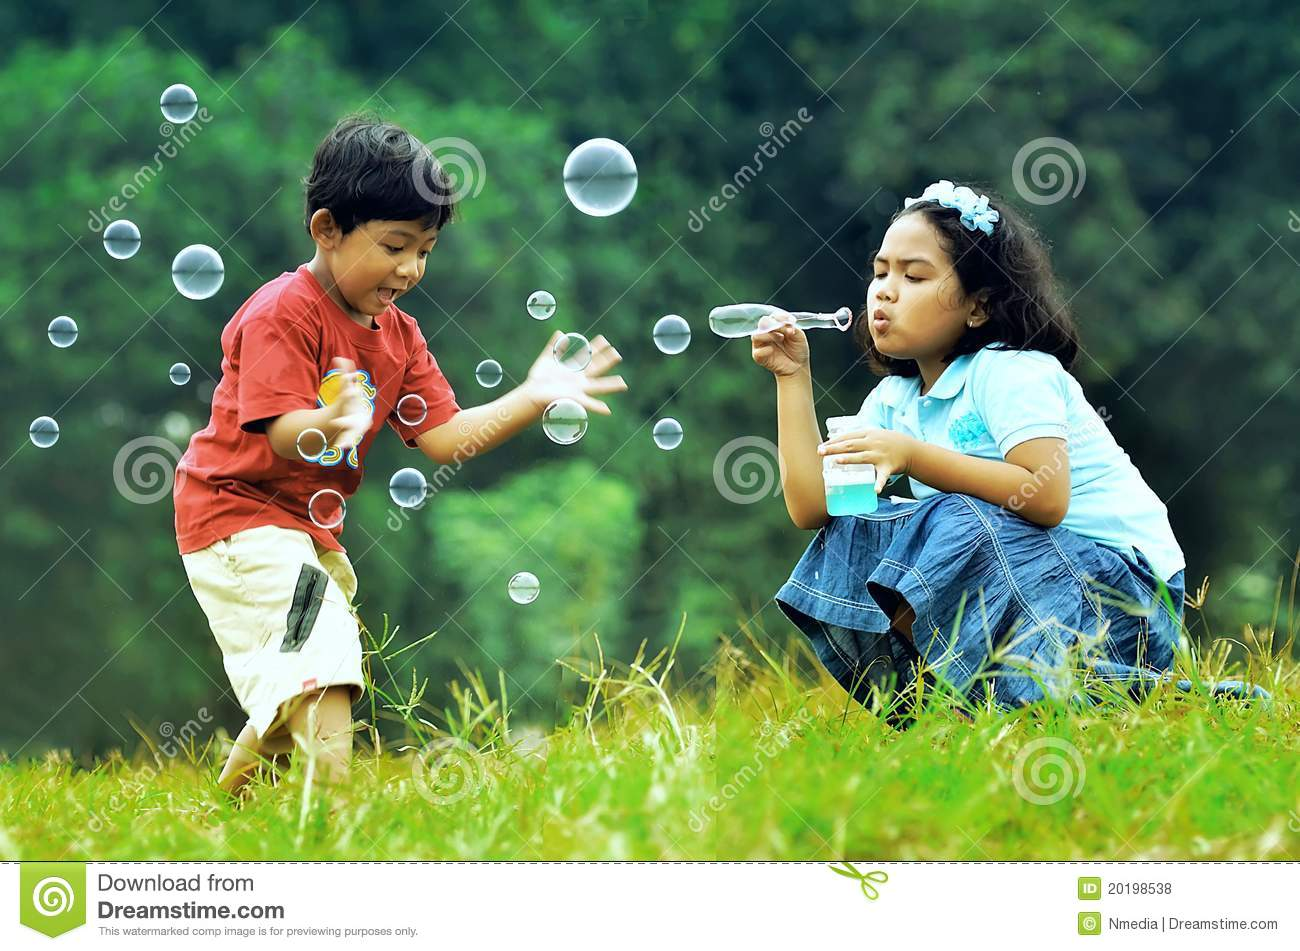 Children Playing With Soap Bubbles Royalty Free Stock